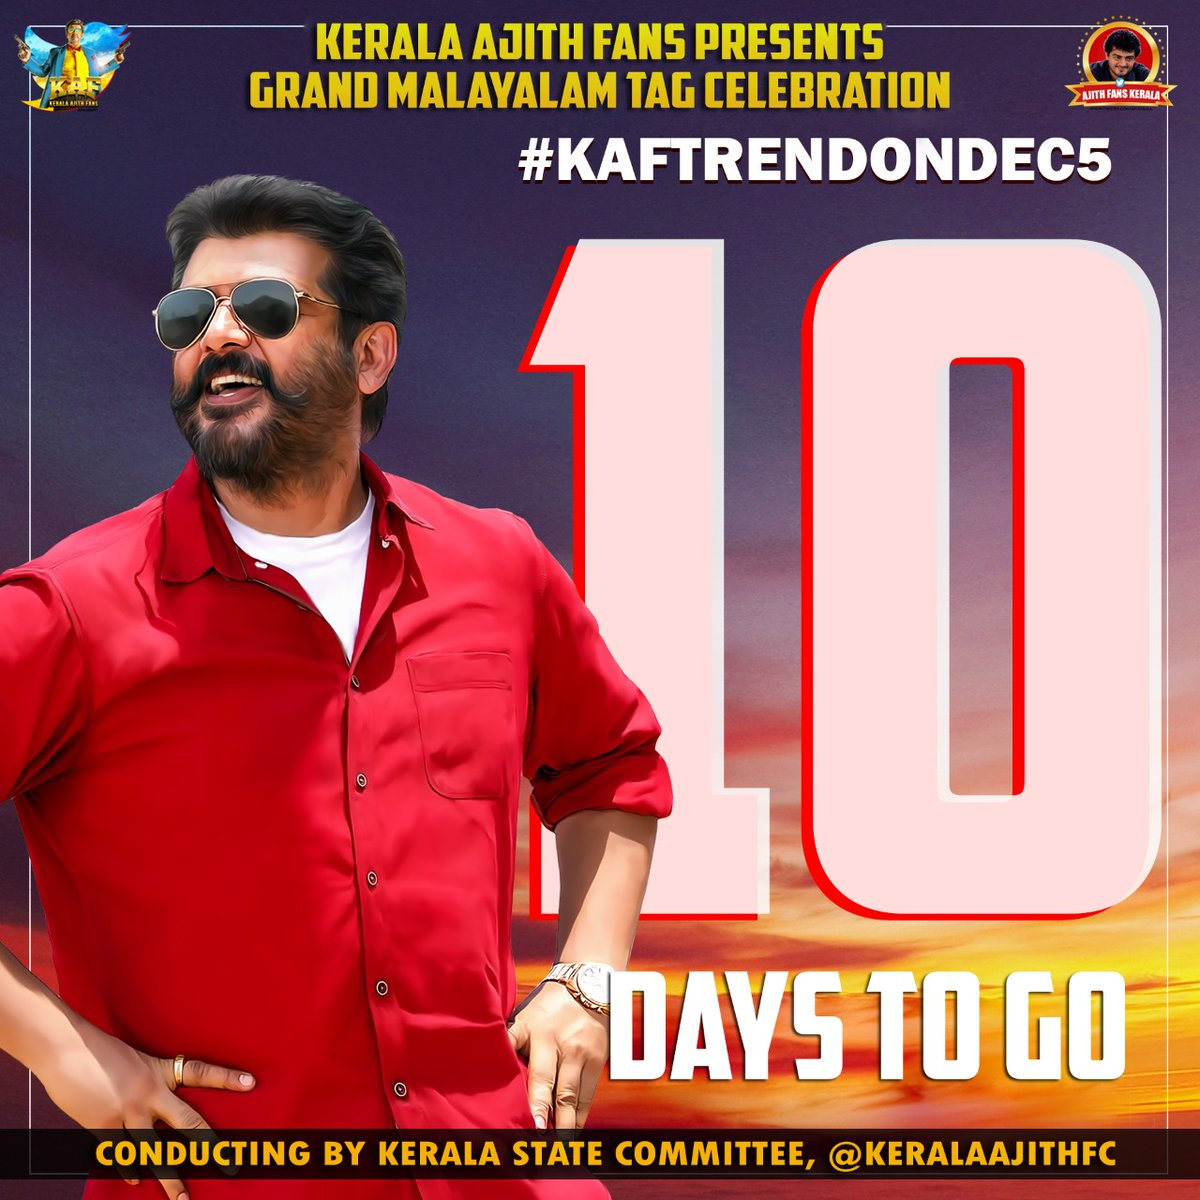 Releasing Today's Count Down Poster  👉Just 10 More days to Go  👉Stay calm before the Storm, Dec5   Get ready for the never before seen Malayalam tag Celebration, Expecting Participation from Everyone for this Mega Venture 💥  @KeralaAjithFC @AfcKerala  #Valimai #KAFTrendOnDec5